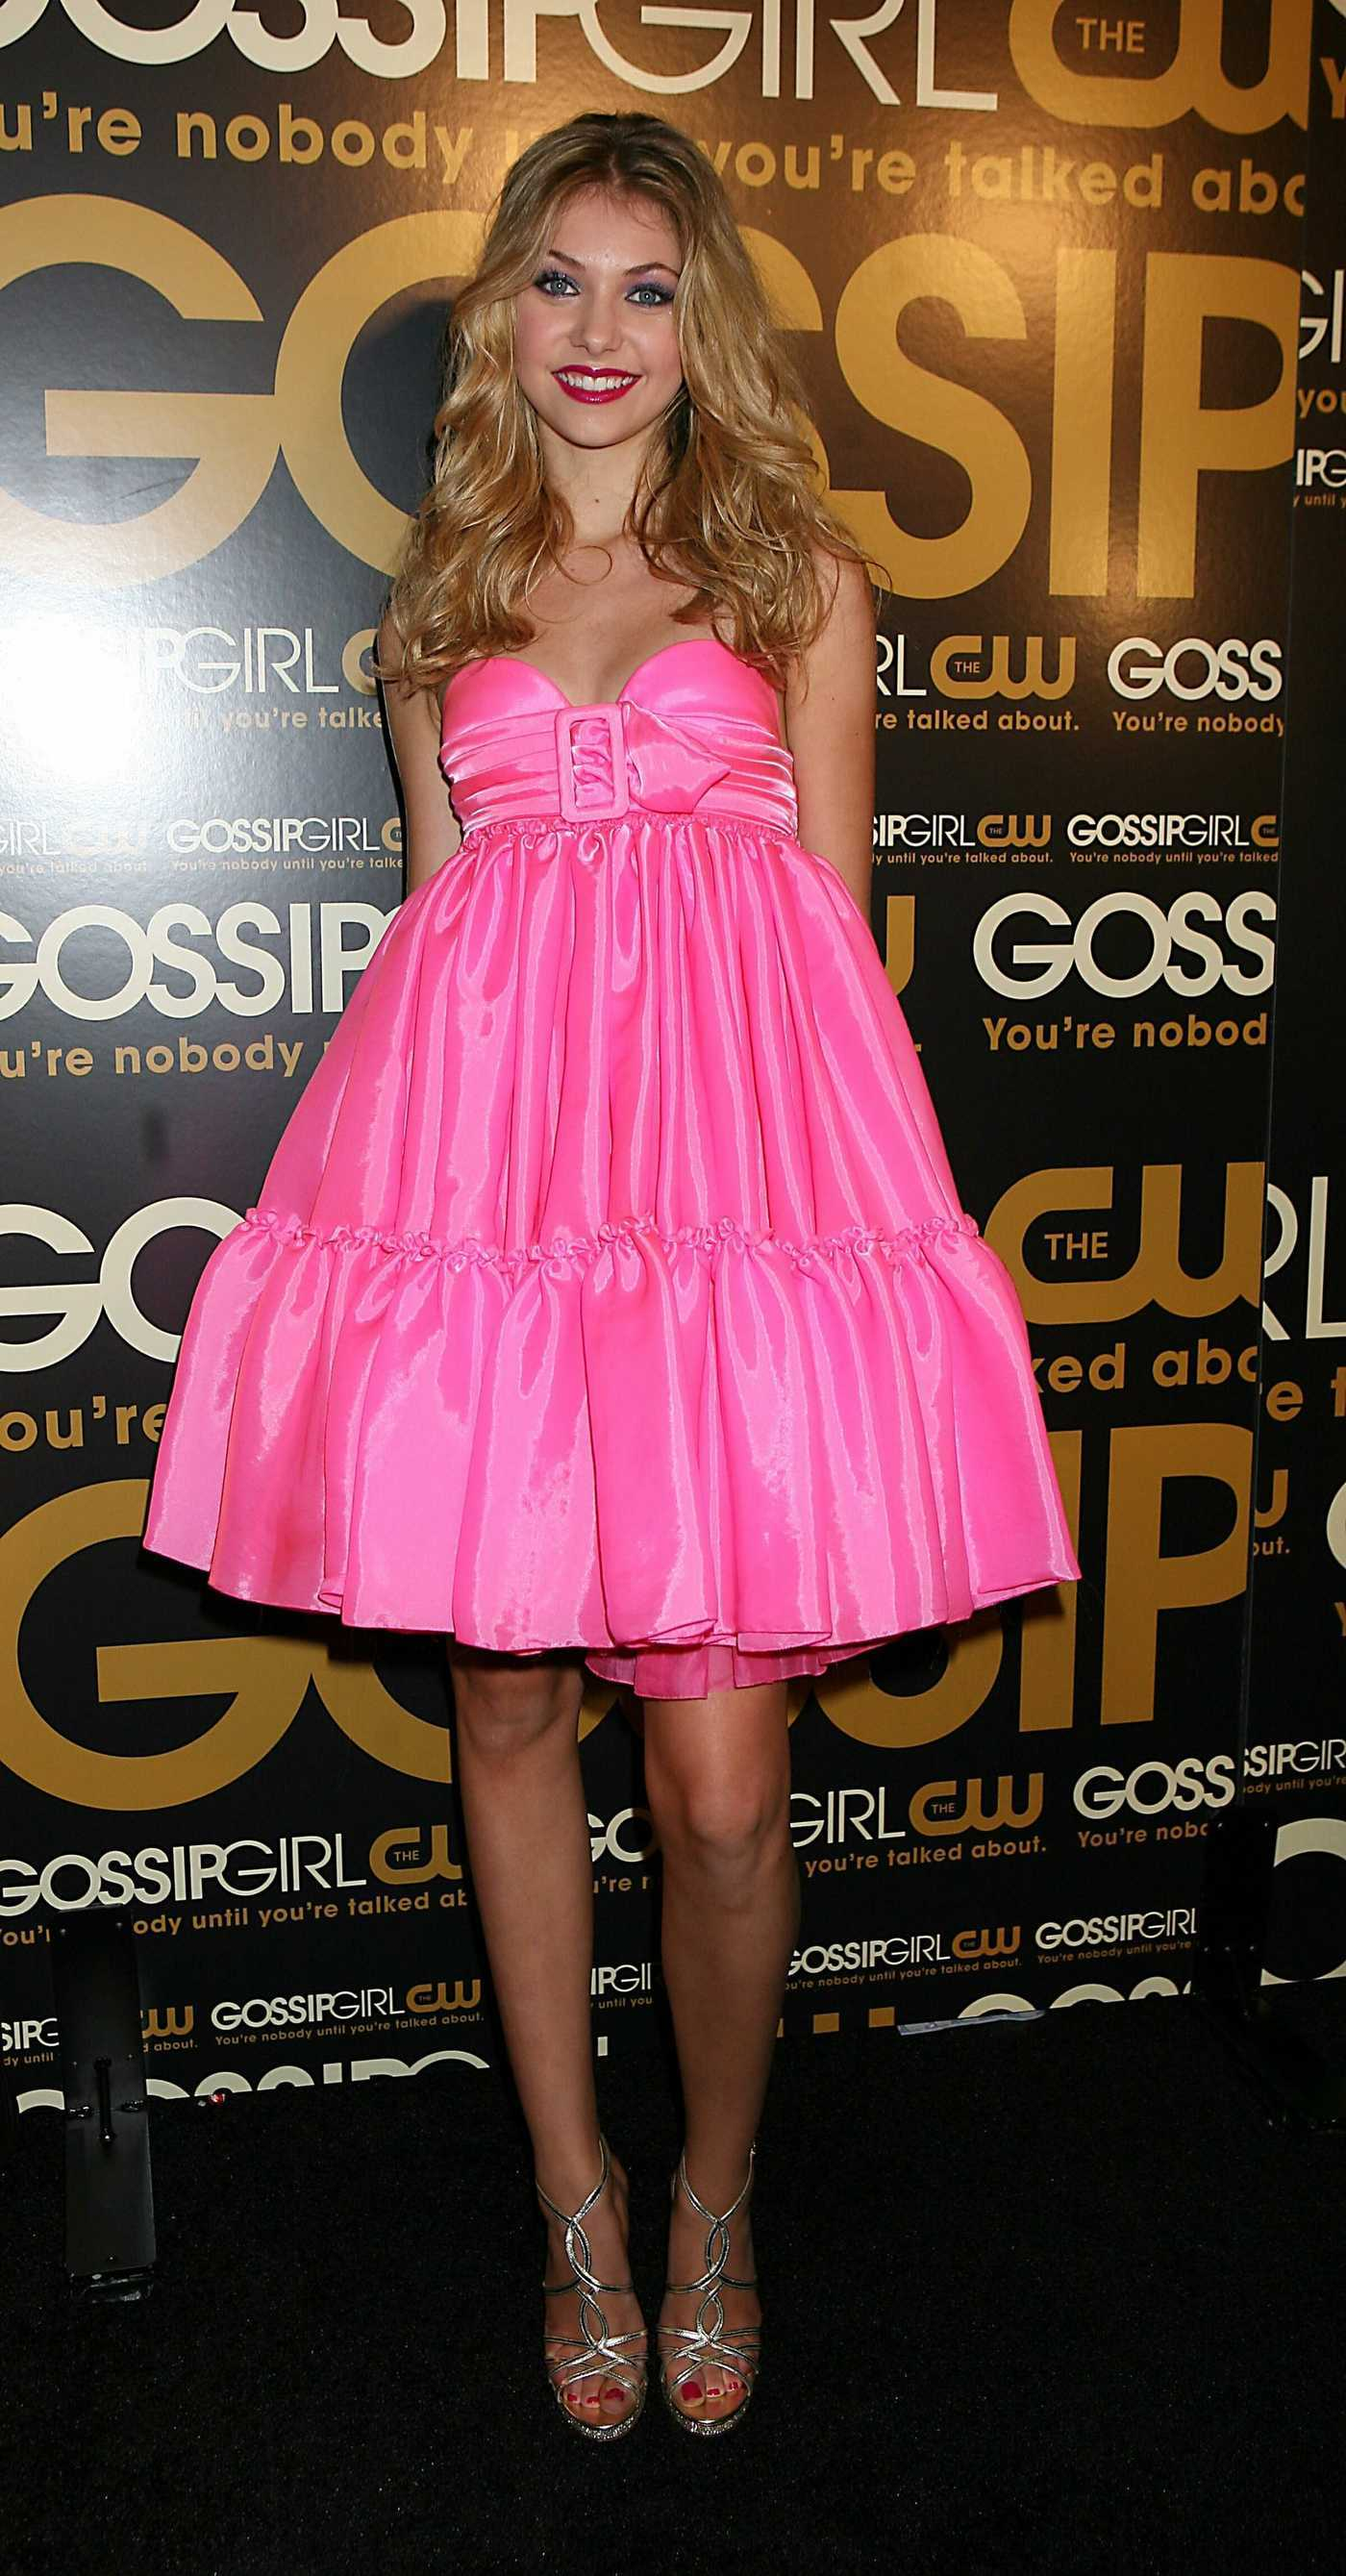 Taylor Momsen at the Gossip Girl Premiere at Tenjune, NYC 09/18/2007